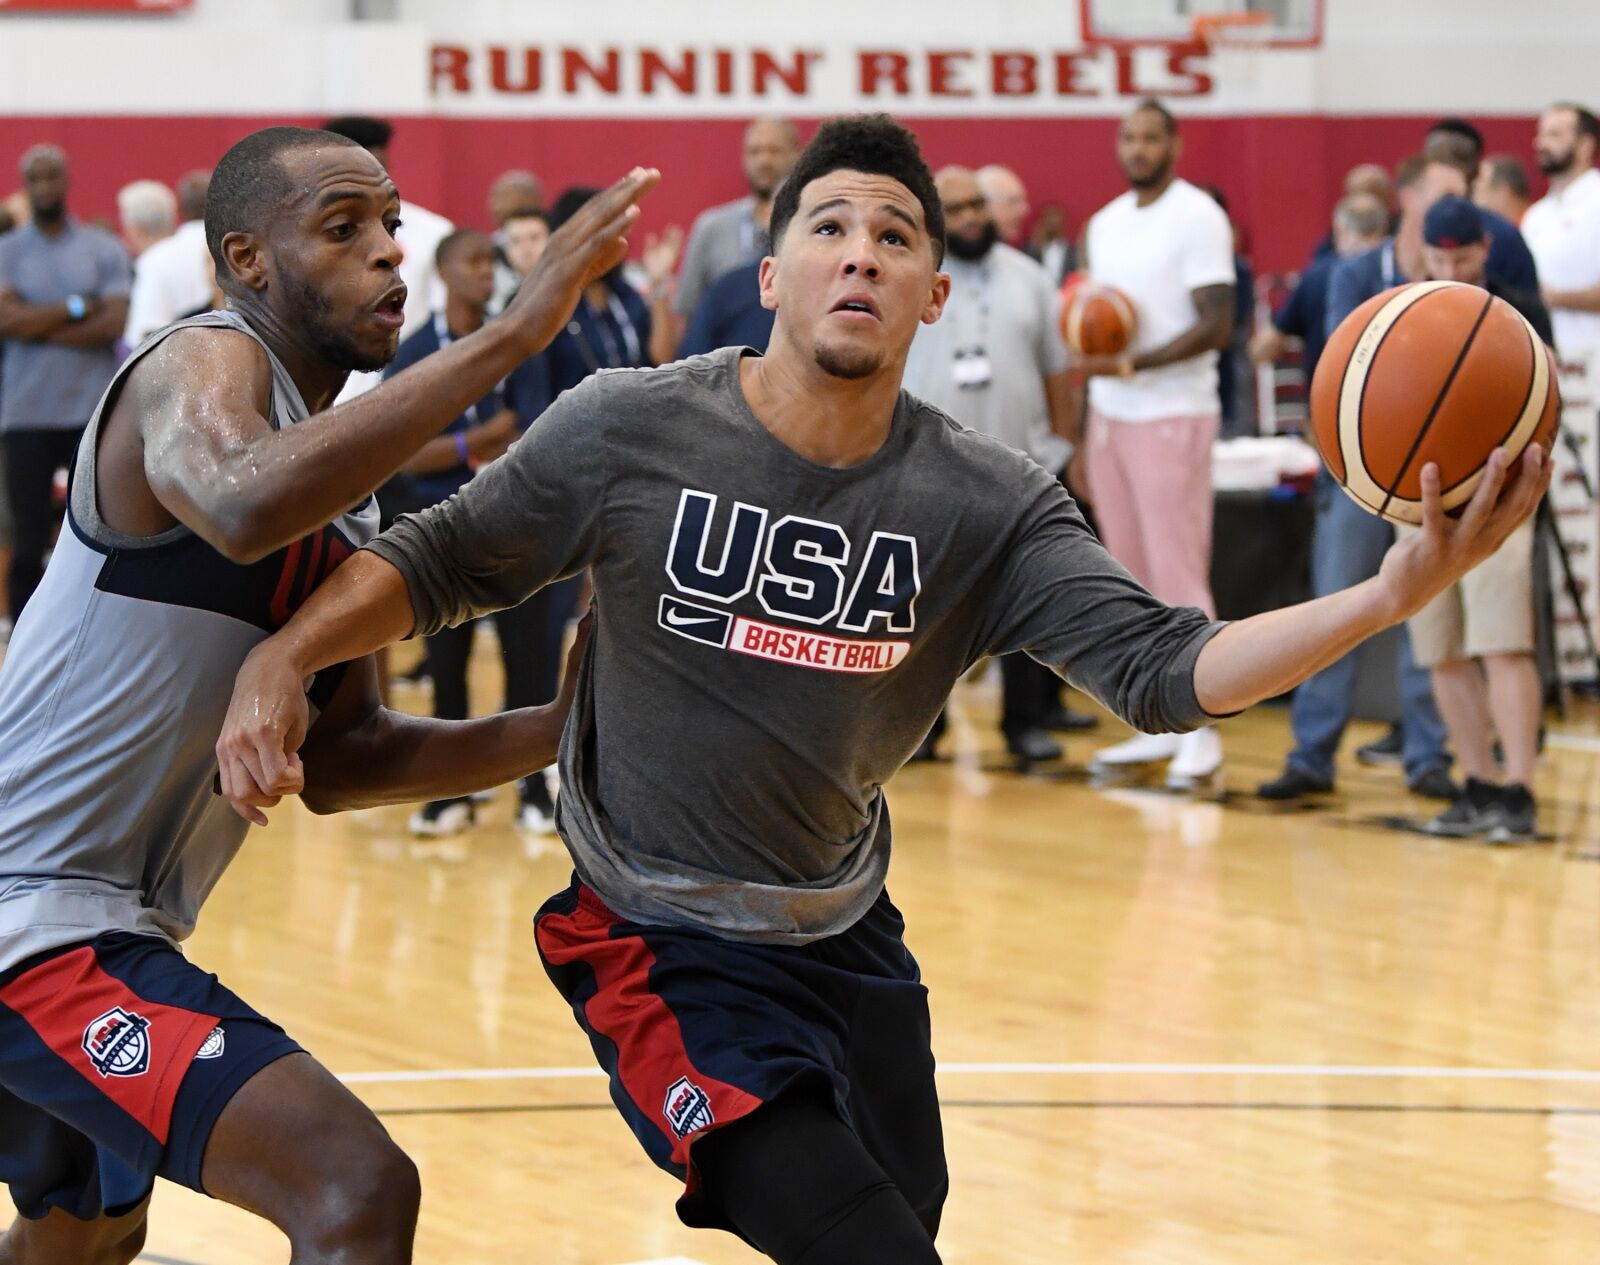 Devin Booker should represent the Phoenix Suns for Team USA in the 2020 Olympics